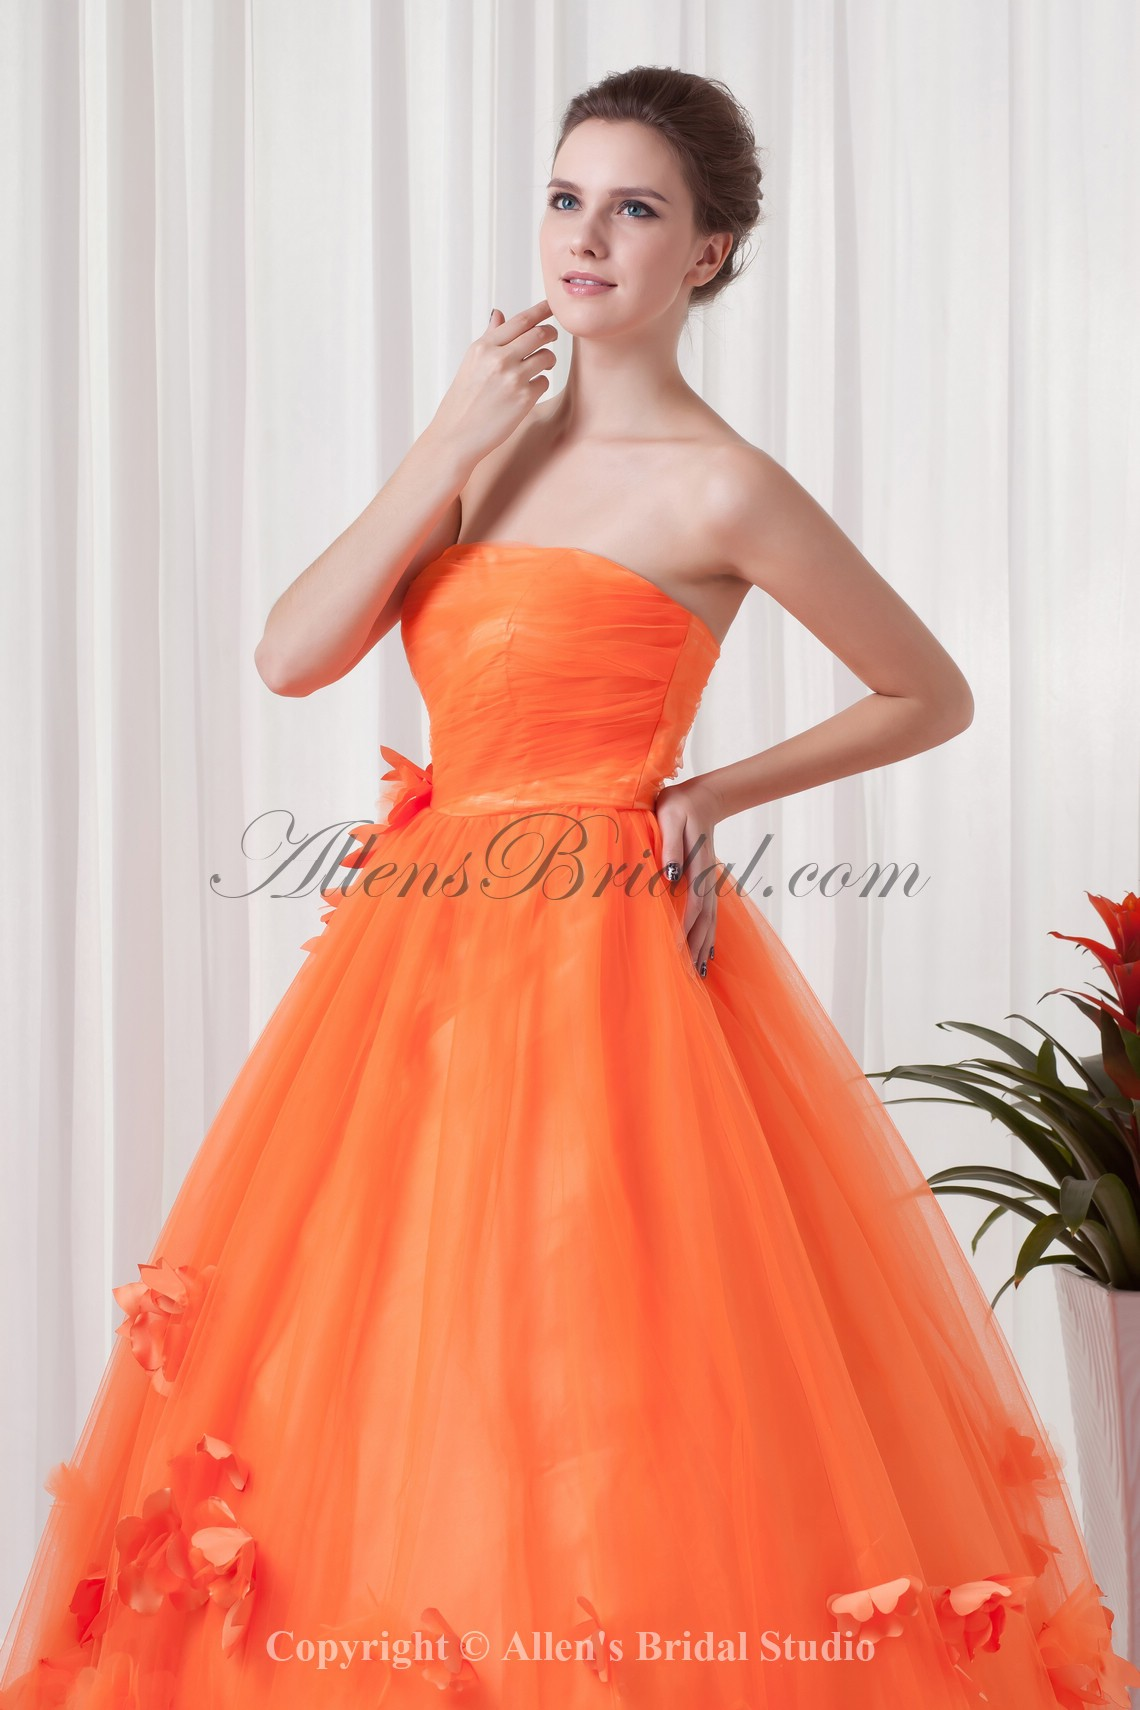 /311-2487/satin-and-net-strapless-ball-gown-floor-length-applique-prom-dress.jpg